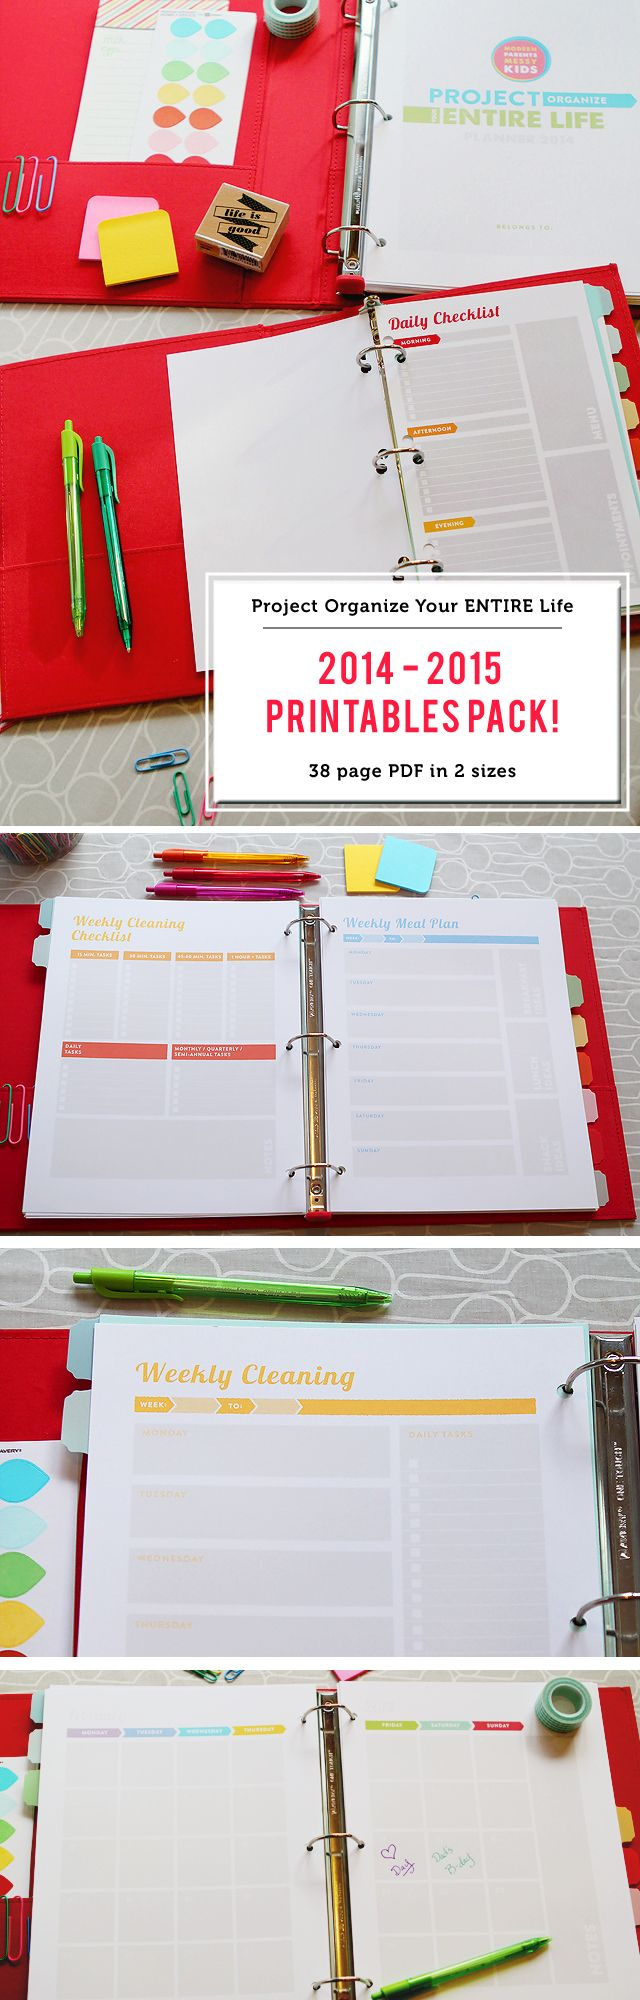 UPDATED FOR 2016!!! An 83 page PDF file with everything you need to keep yourself organized this year - meal planning sheets, cleaning schedules, daily/weekly/monthly calendars and lots more. I LOVE this system!